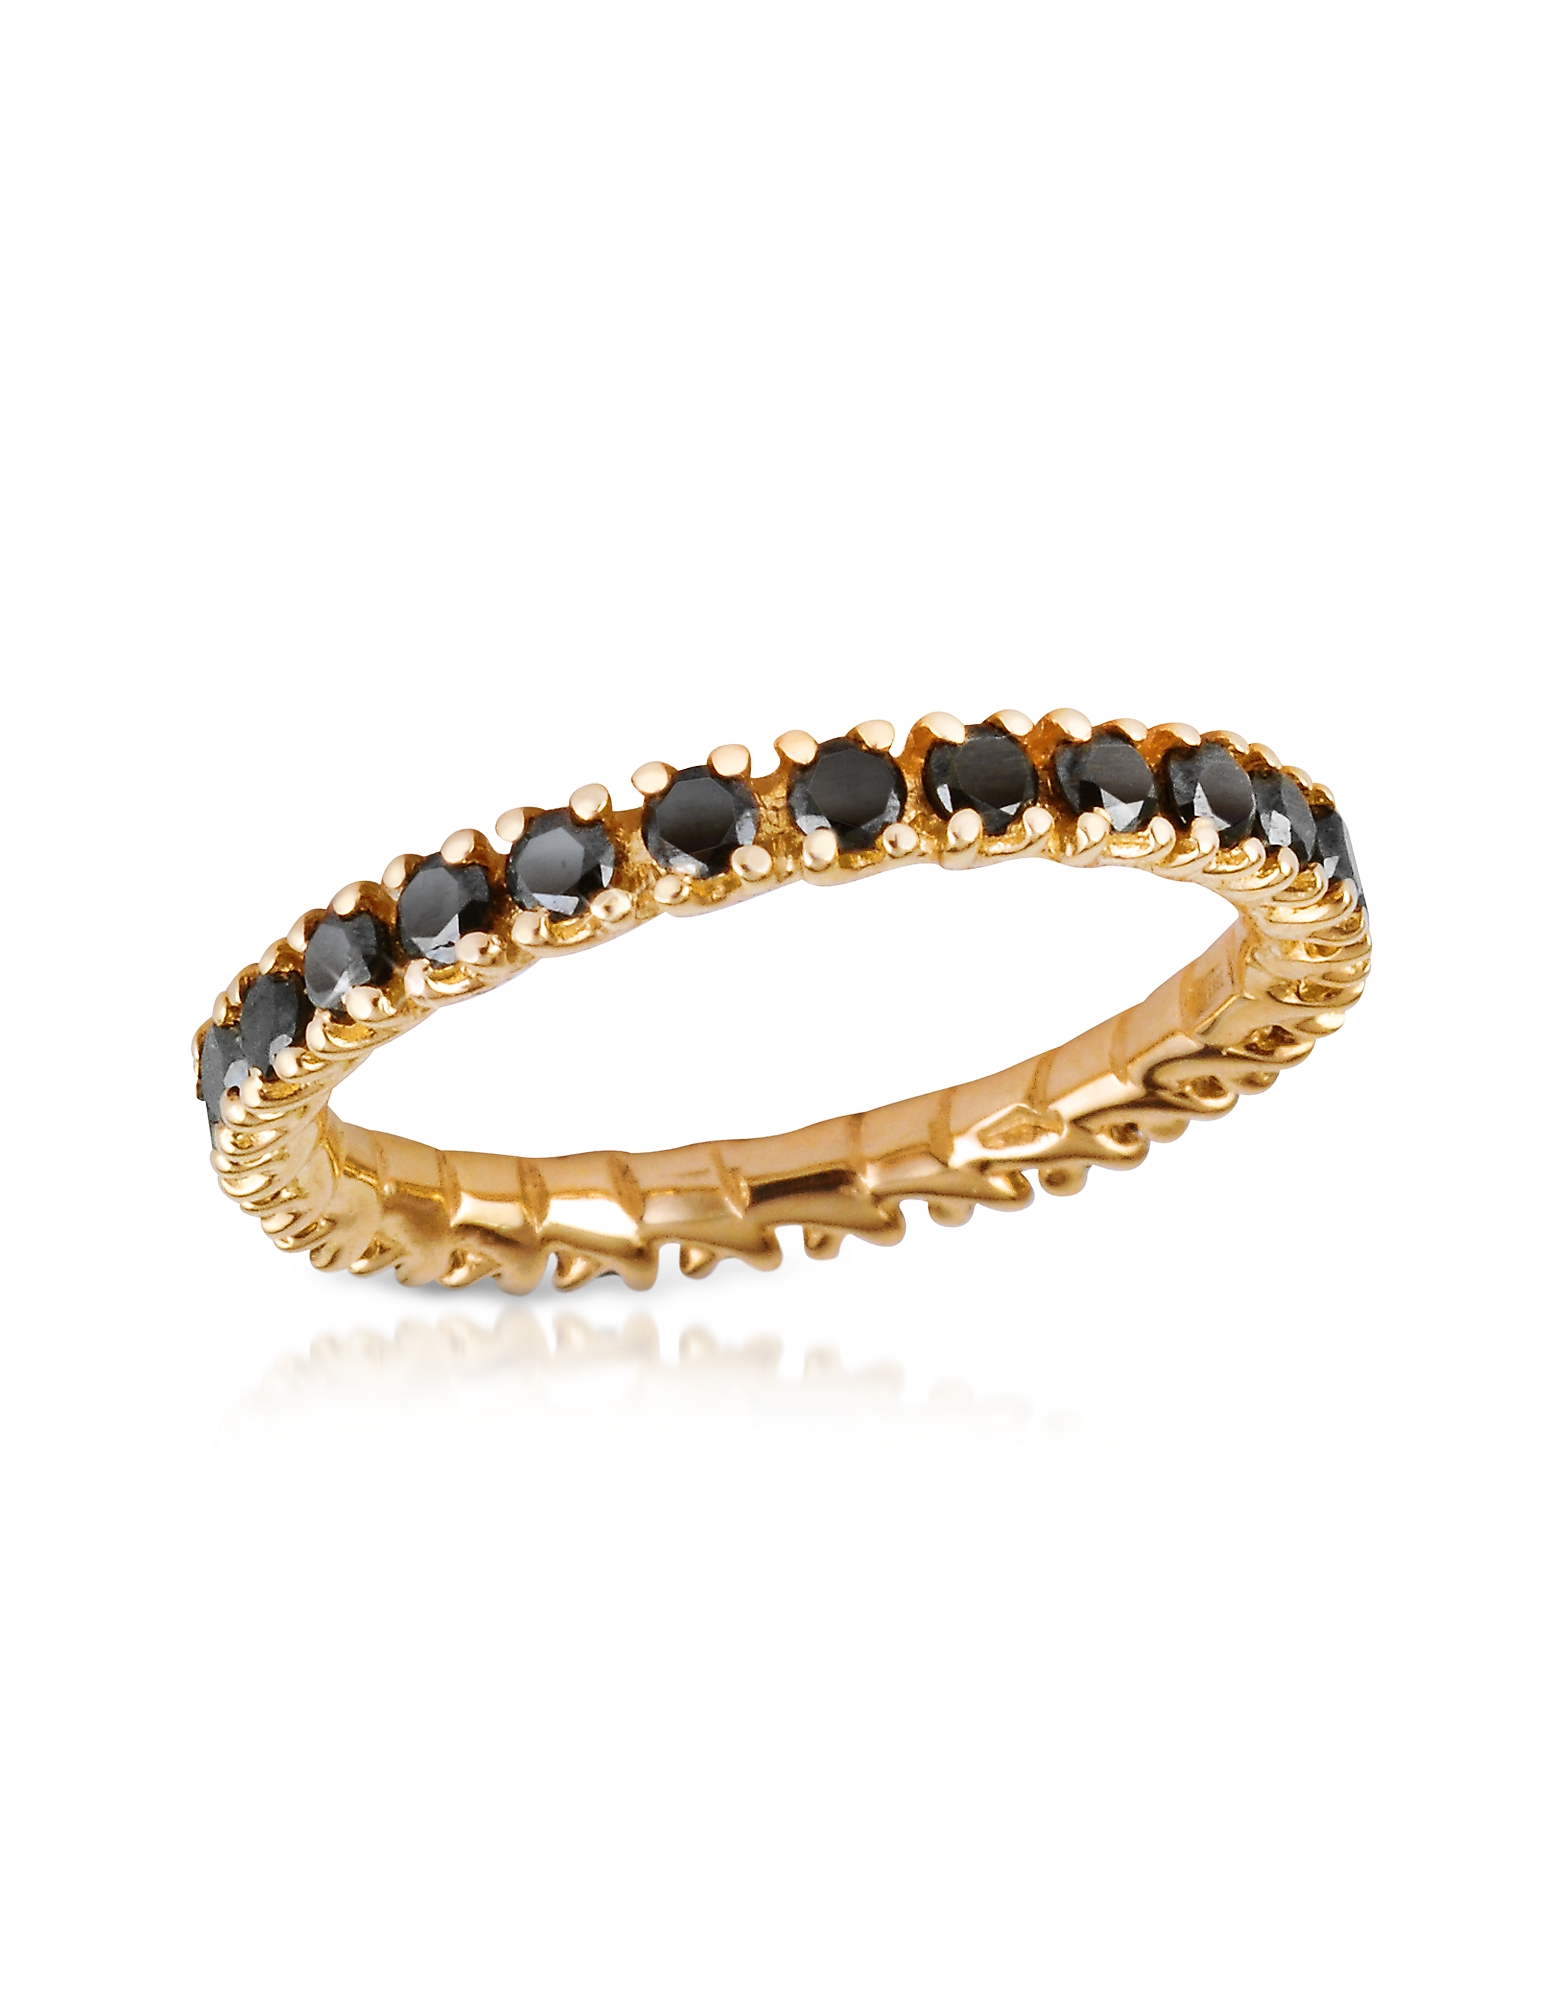 Forzieri Rings, Black Diamond 18K Yellow Gold Eternity Band